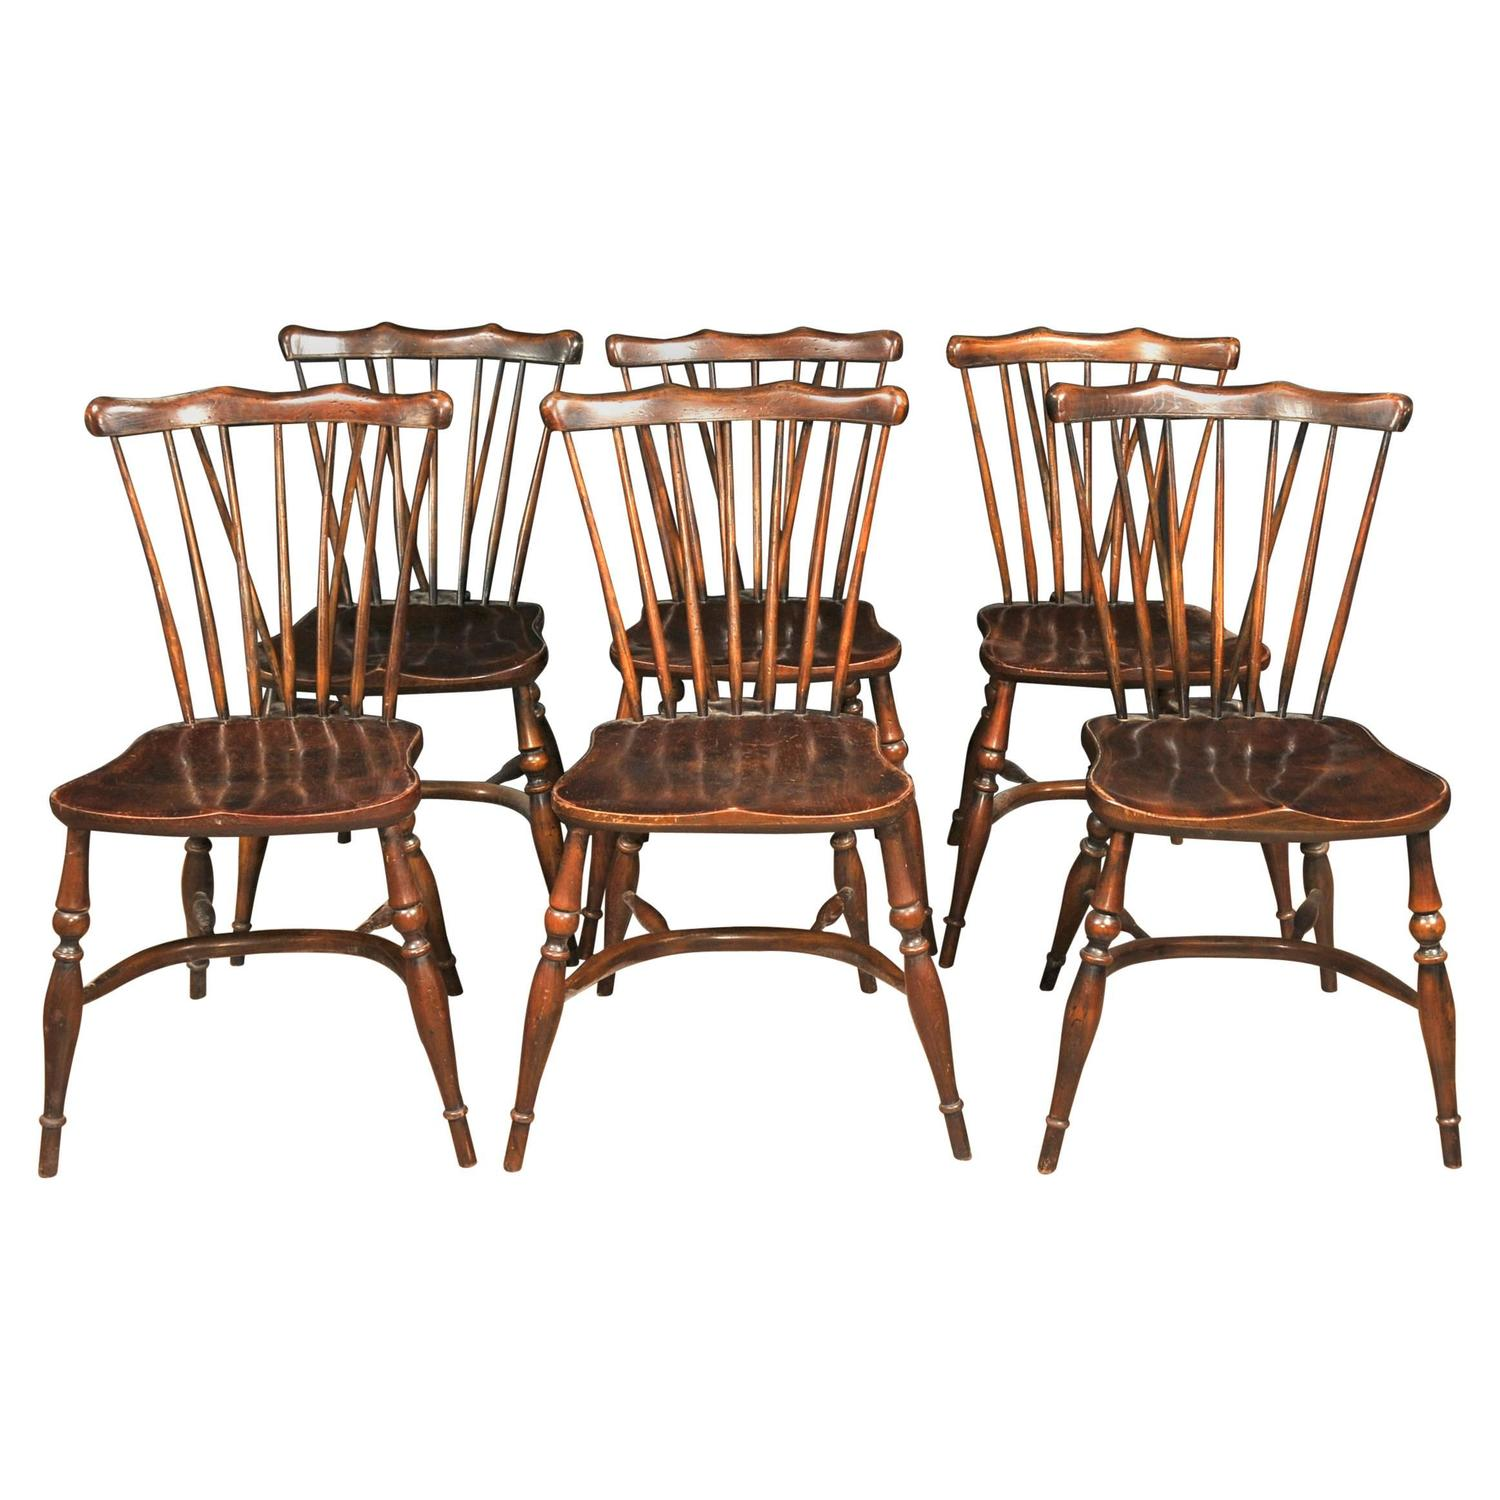 antique windsor chair identification vintage wooden childs set of eight oak chairs 1920 kitchen